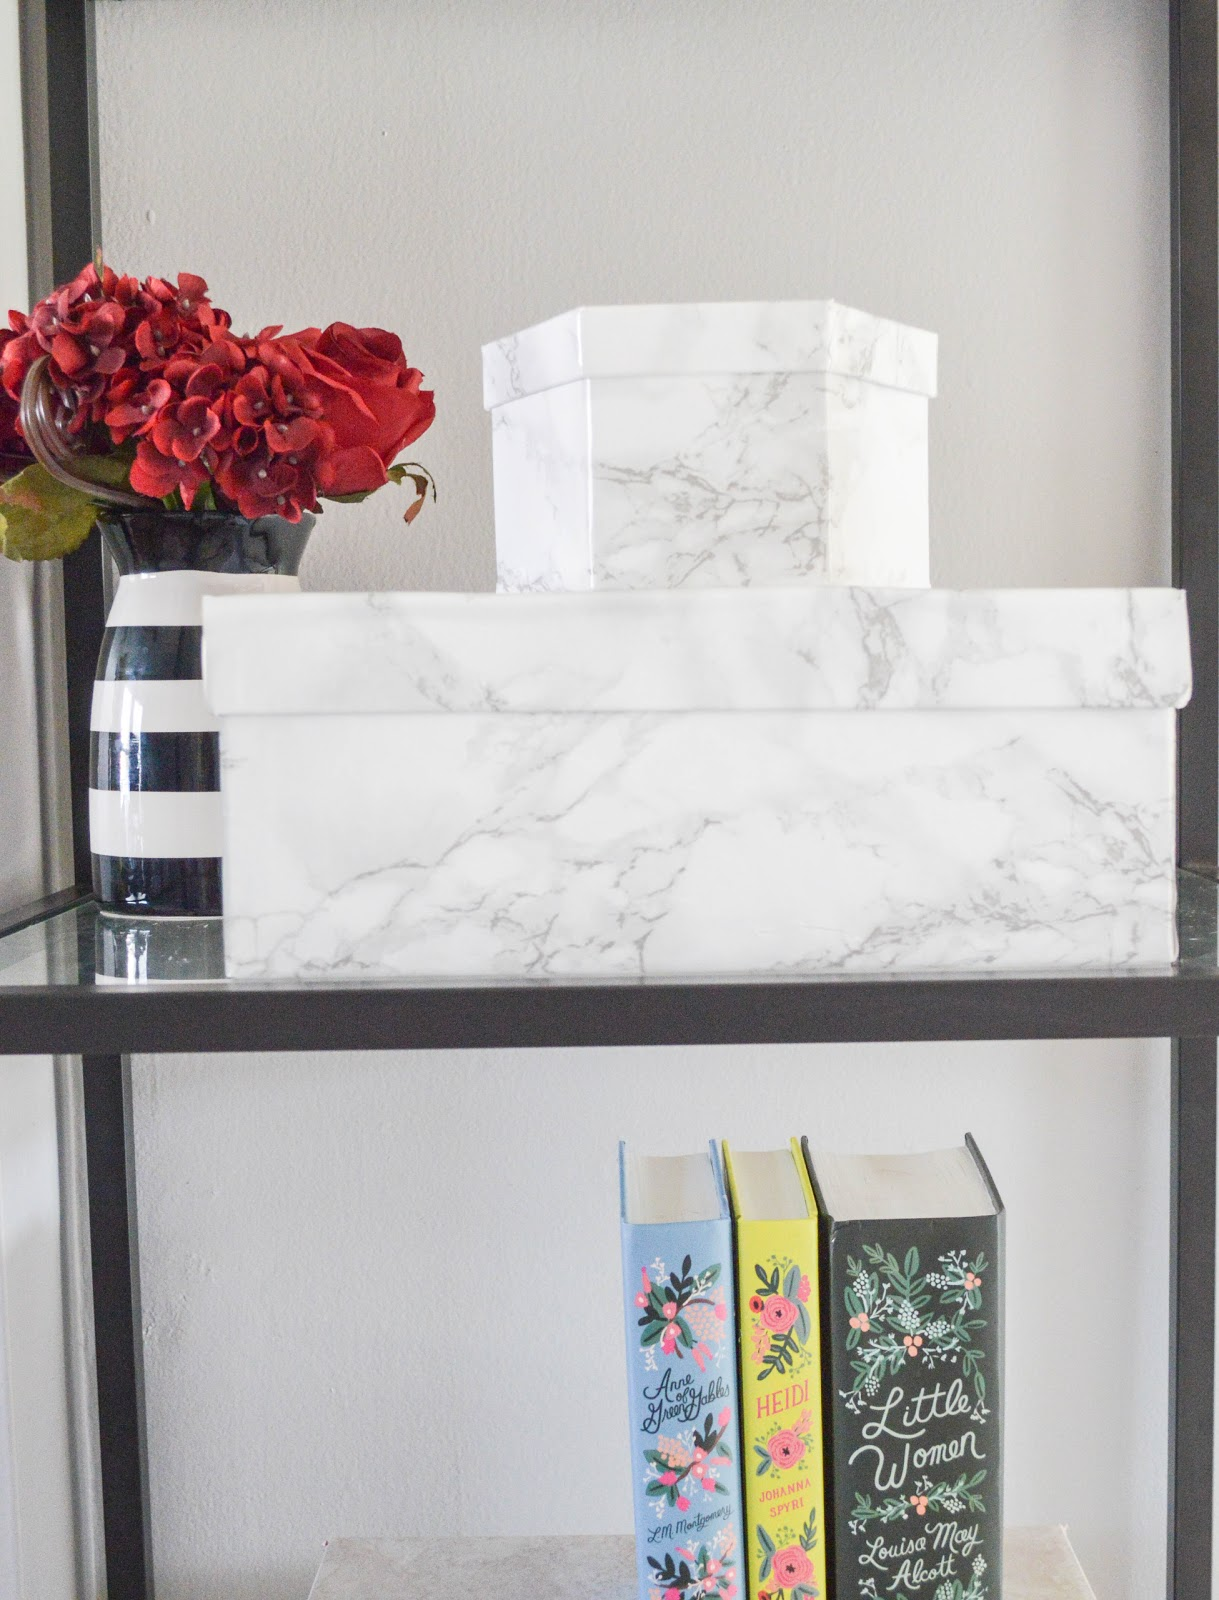 Re-Purpose your shoe boxes into pretty storage